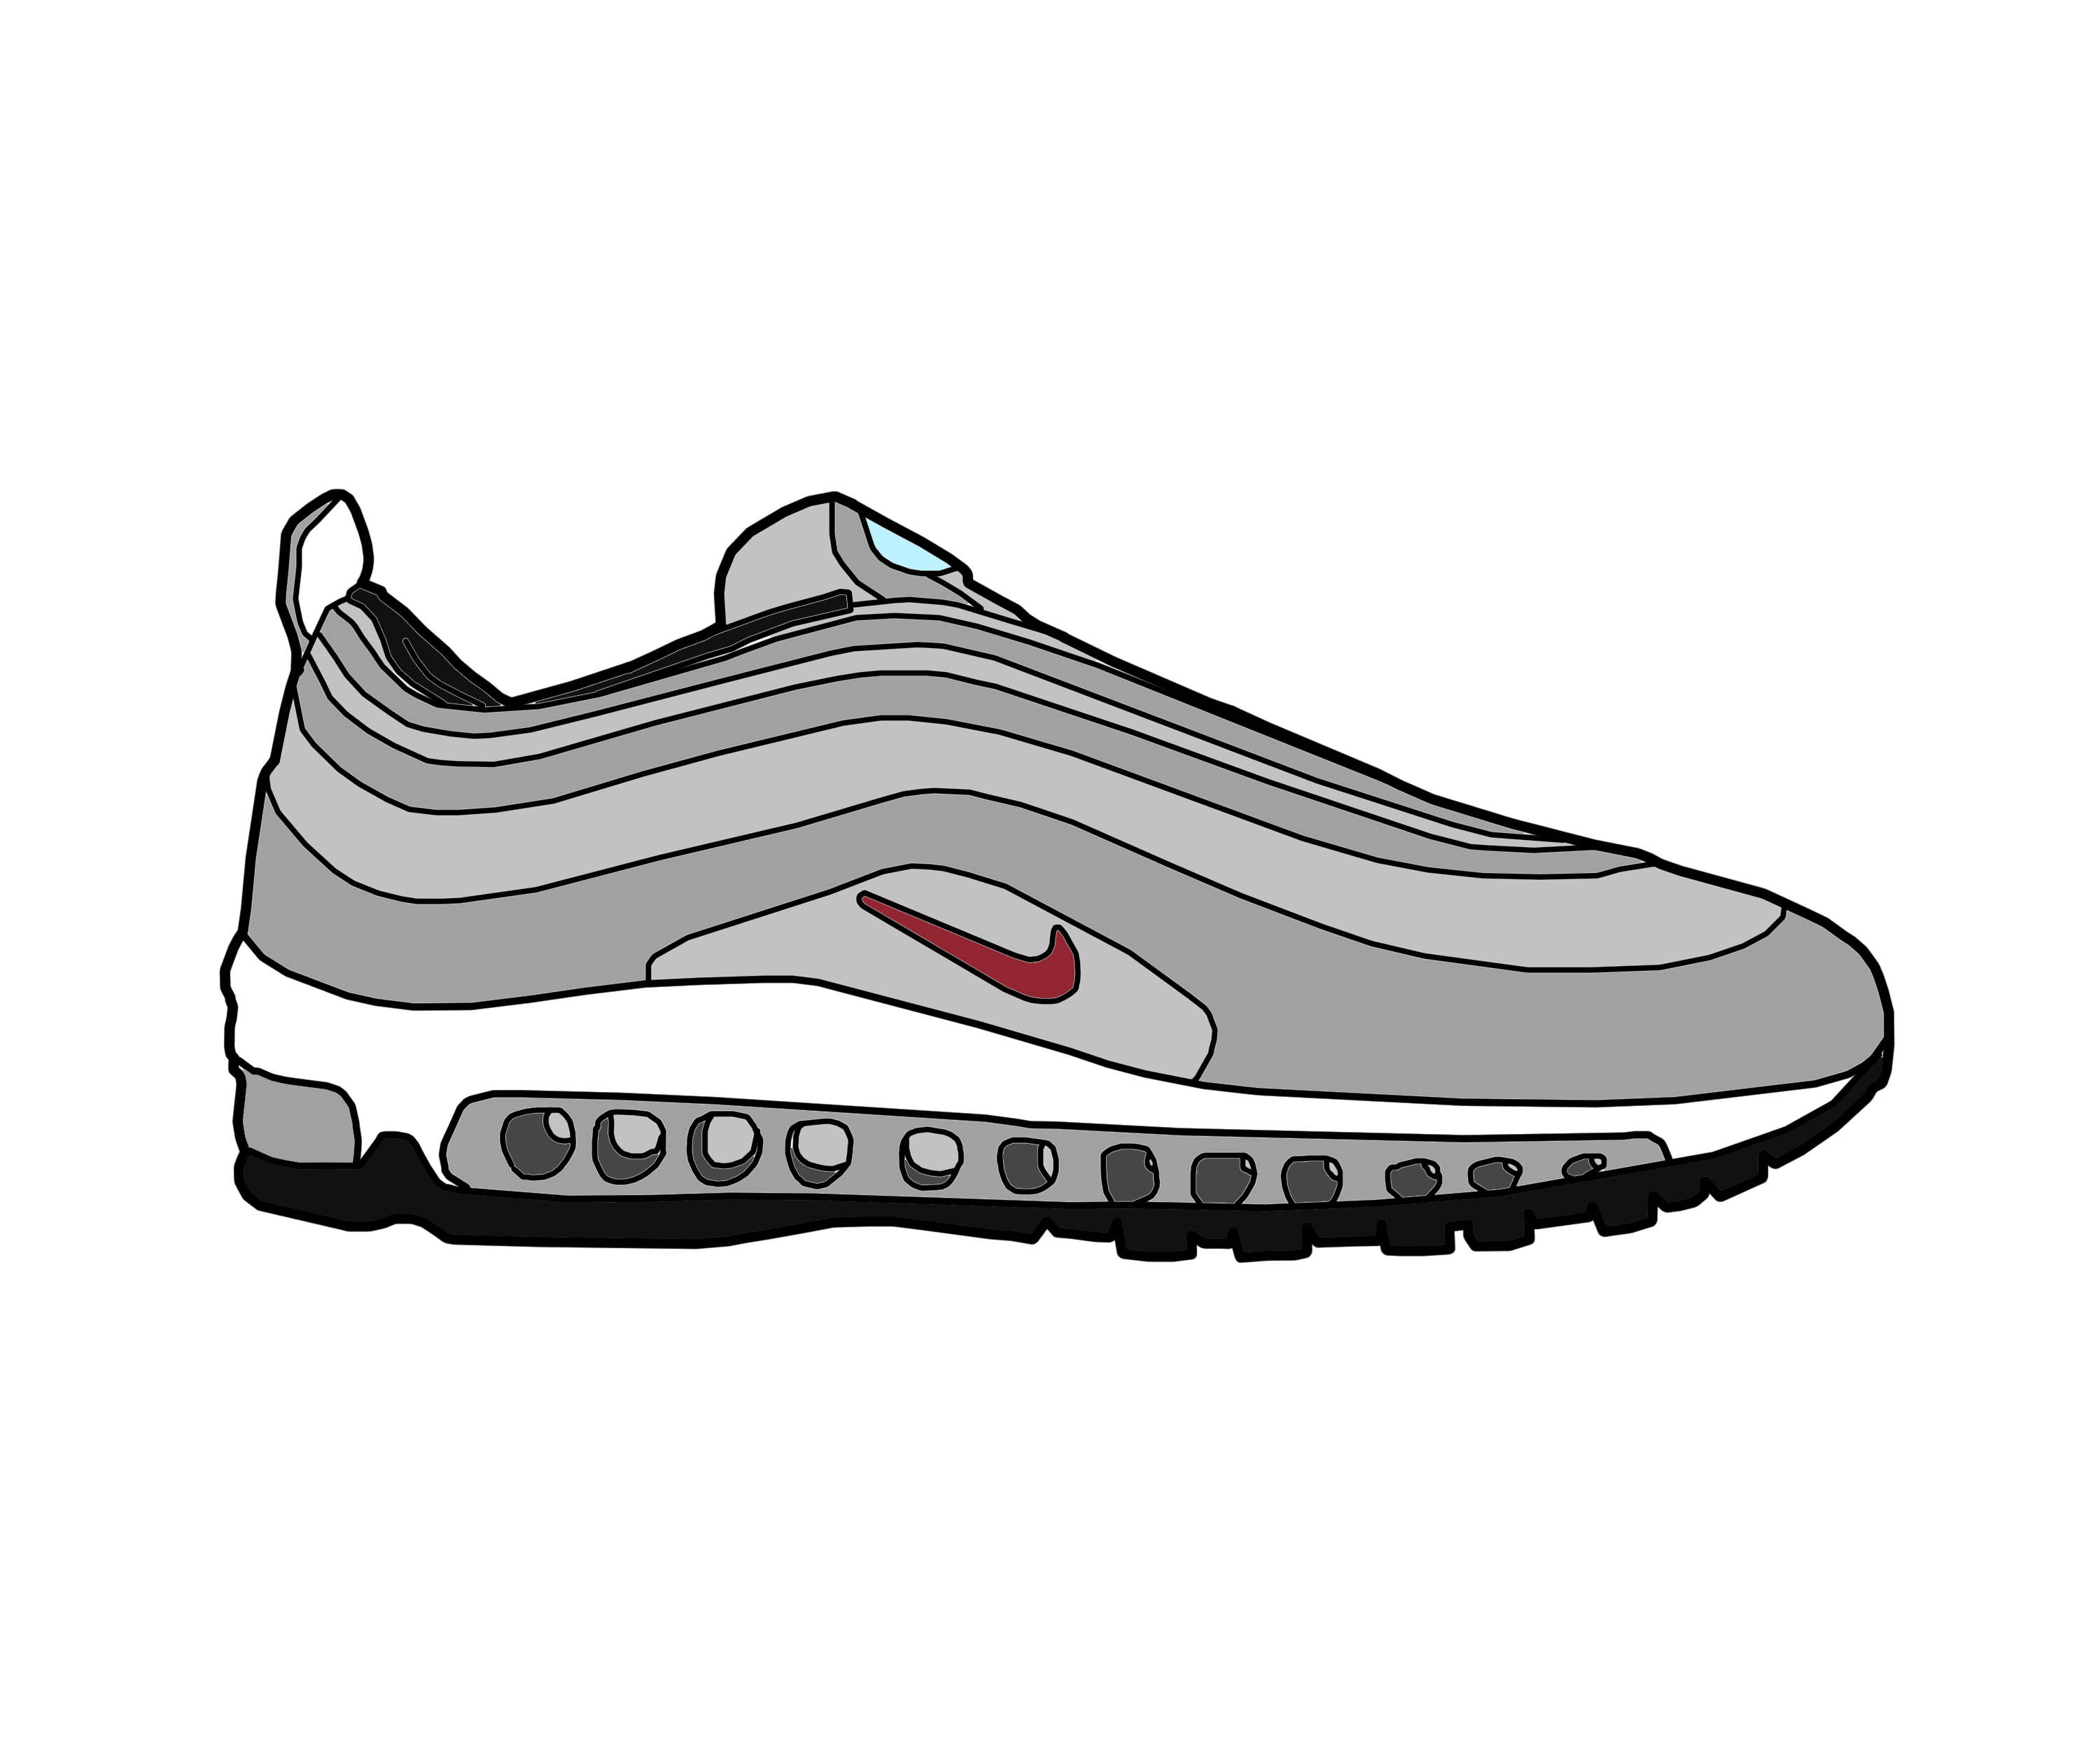 new style 9c4b4 91f15 MattisamazingPS Nike Air Max 97 OG by MattisamazingPS ...